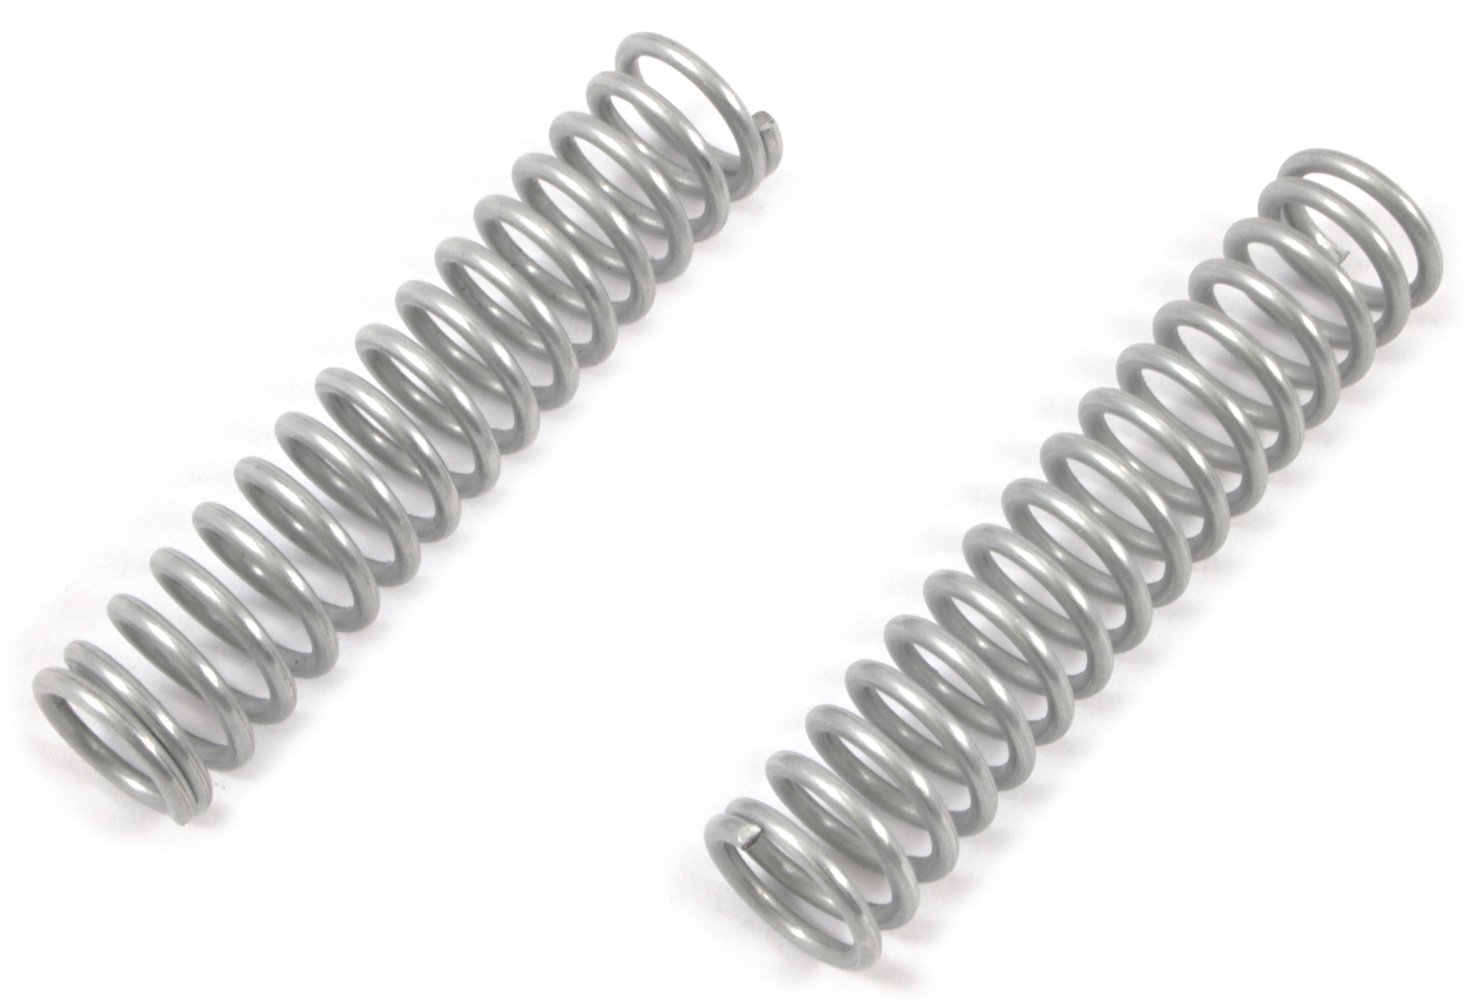 Forney 72641 Wire Spring Compression, 7/16-Inch-by-2-Inch-by-.054-Inch, 2-Pack